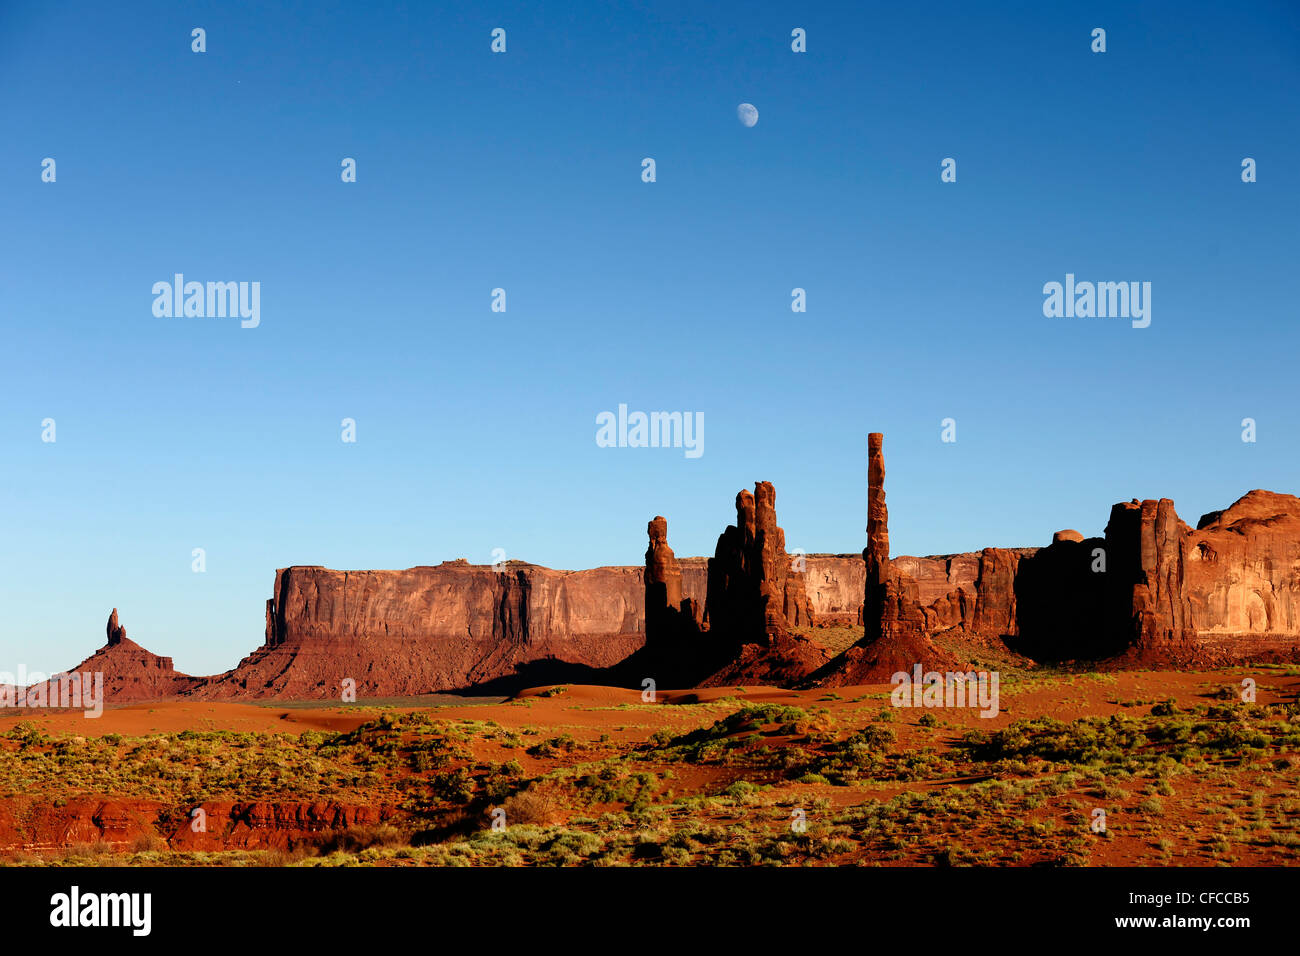 Needles, Sandstone formations, Totem pole, Yei Bi Chei, Monument Valley, Arizona, USA - Stock Image